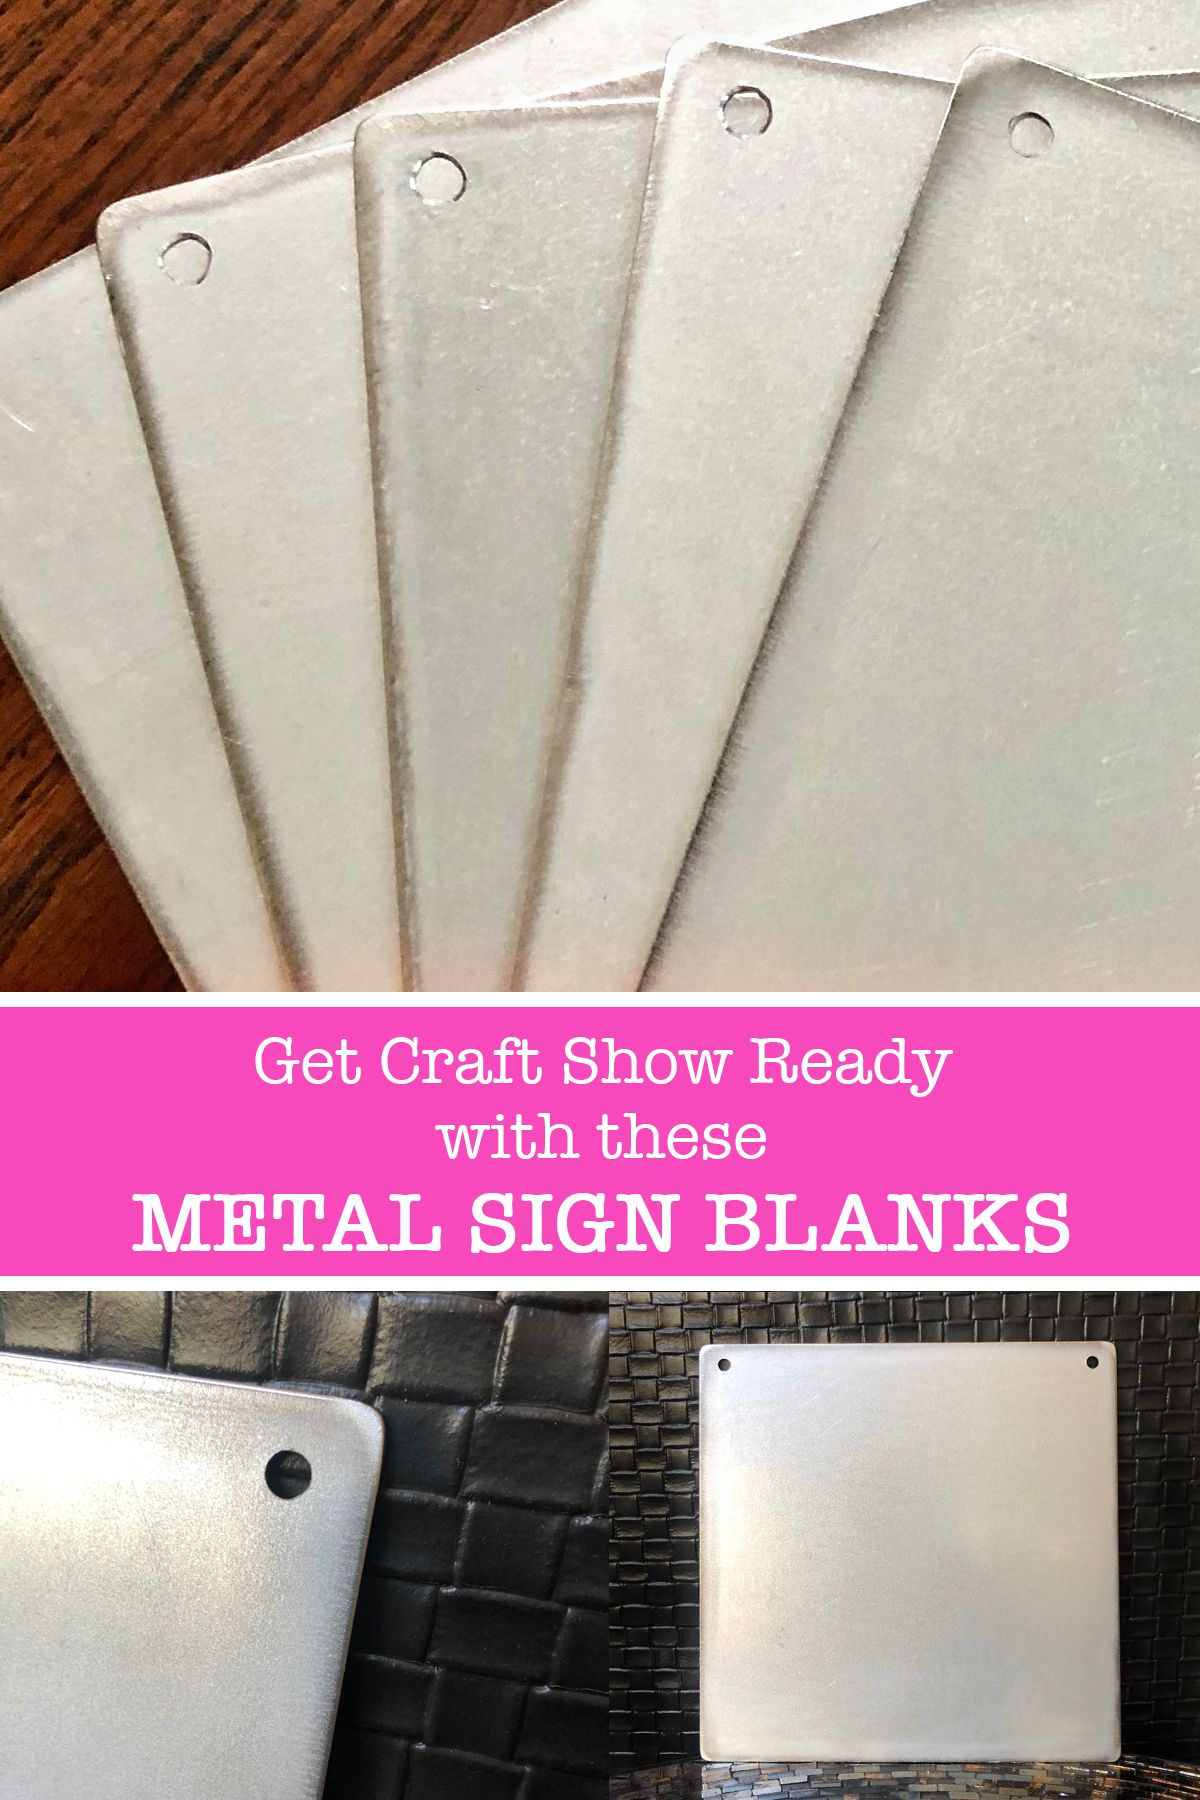 5 Square Metal Sign Blanks Metal Sign Blanks Blank Metal Signs For Vinyl Blank Signs For Sayings Galvanized Metal Sign Blanks Metal Signs Vinyl Blanks Hand Crafted Gifts